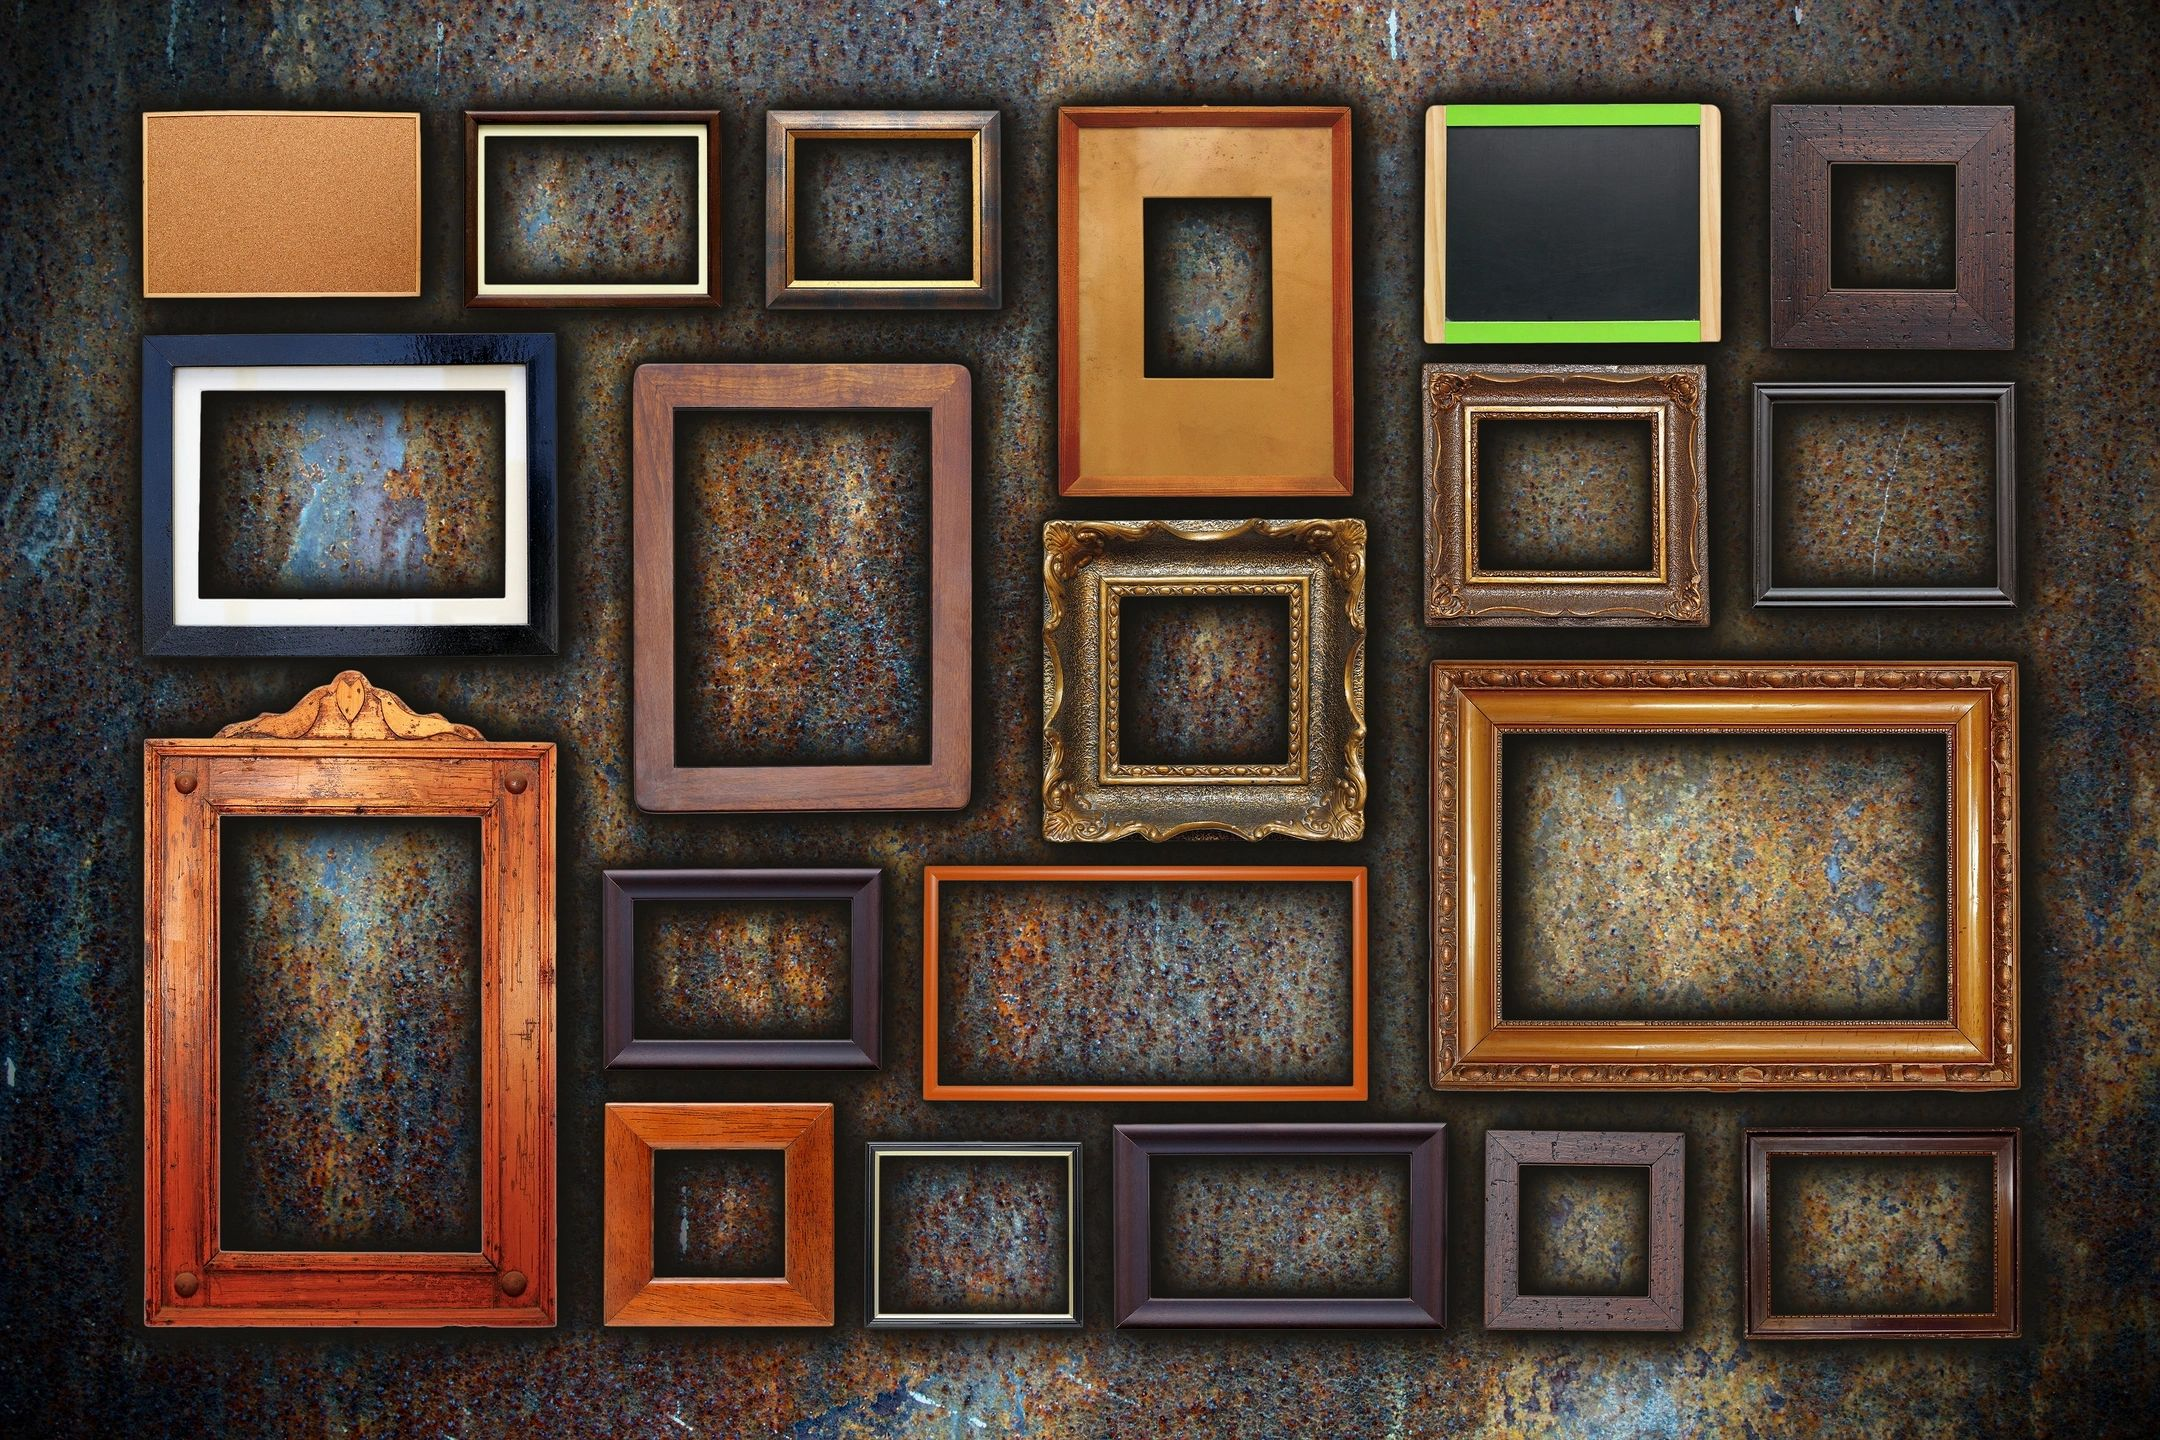 Midtown framing custom picture framing notary jeuxipadfo Choice Image